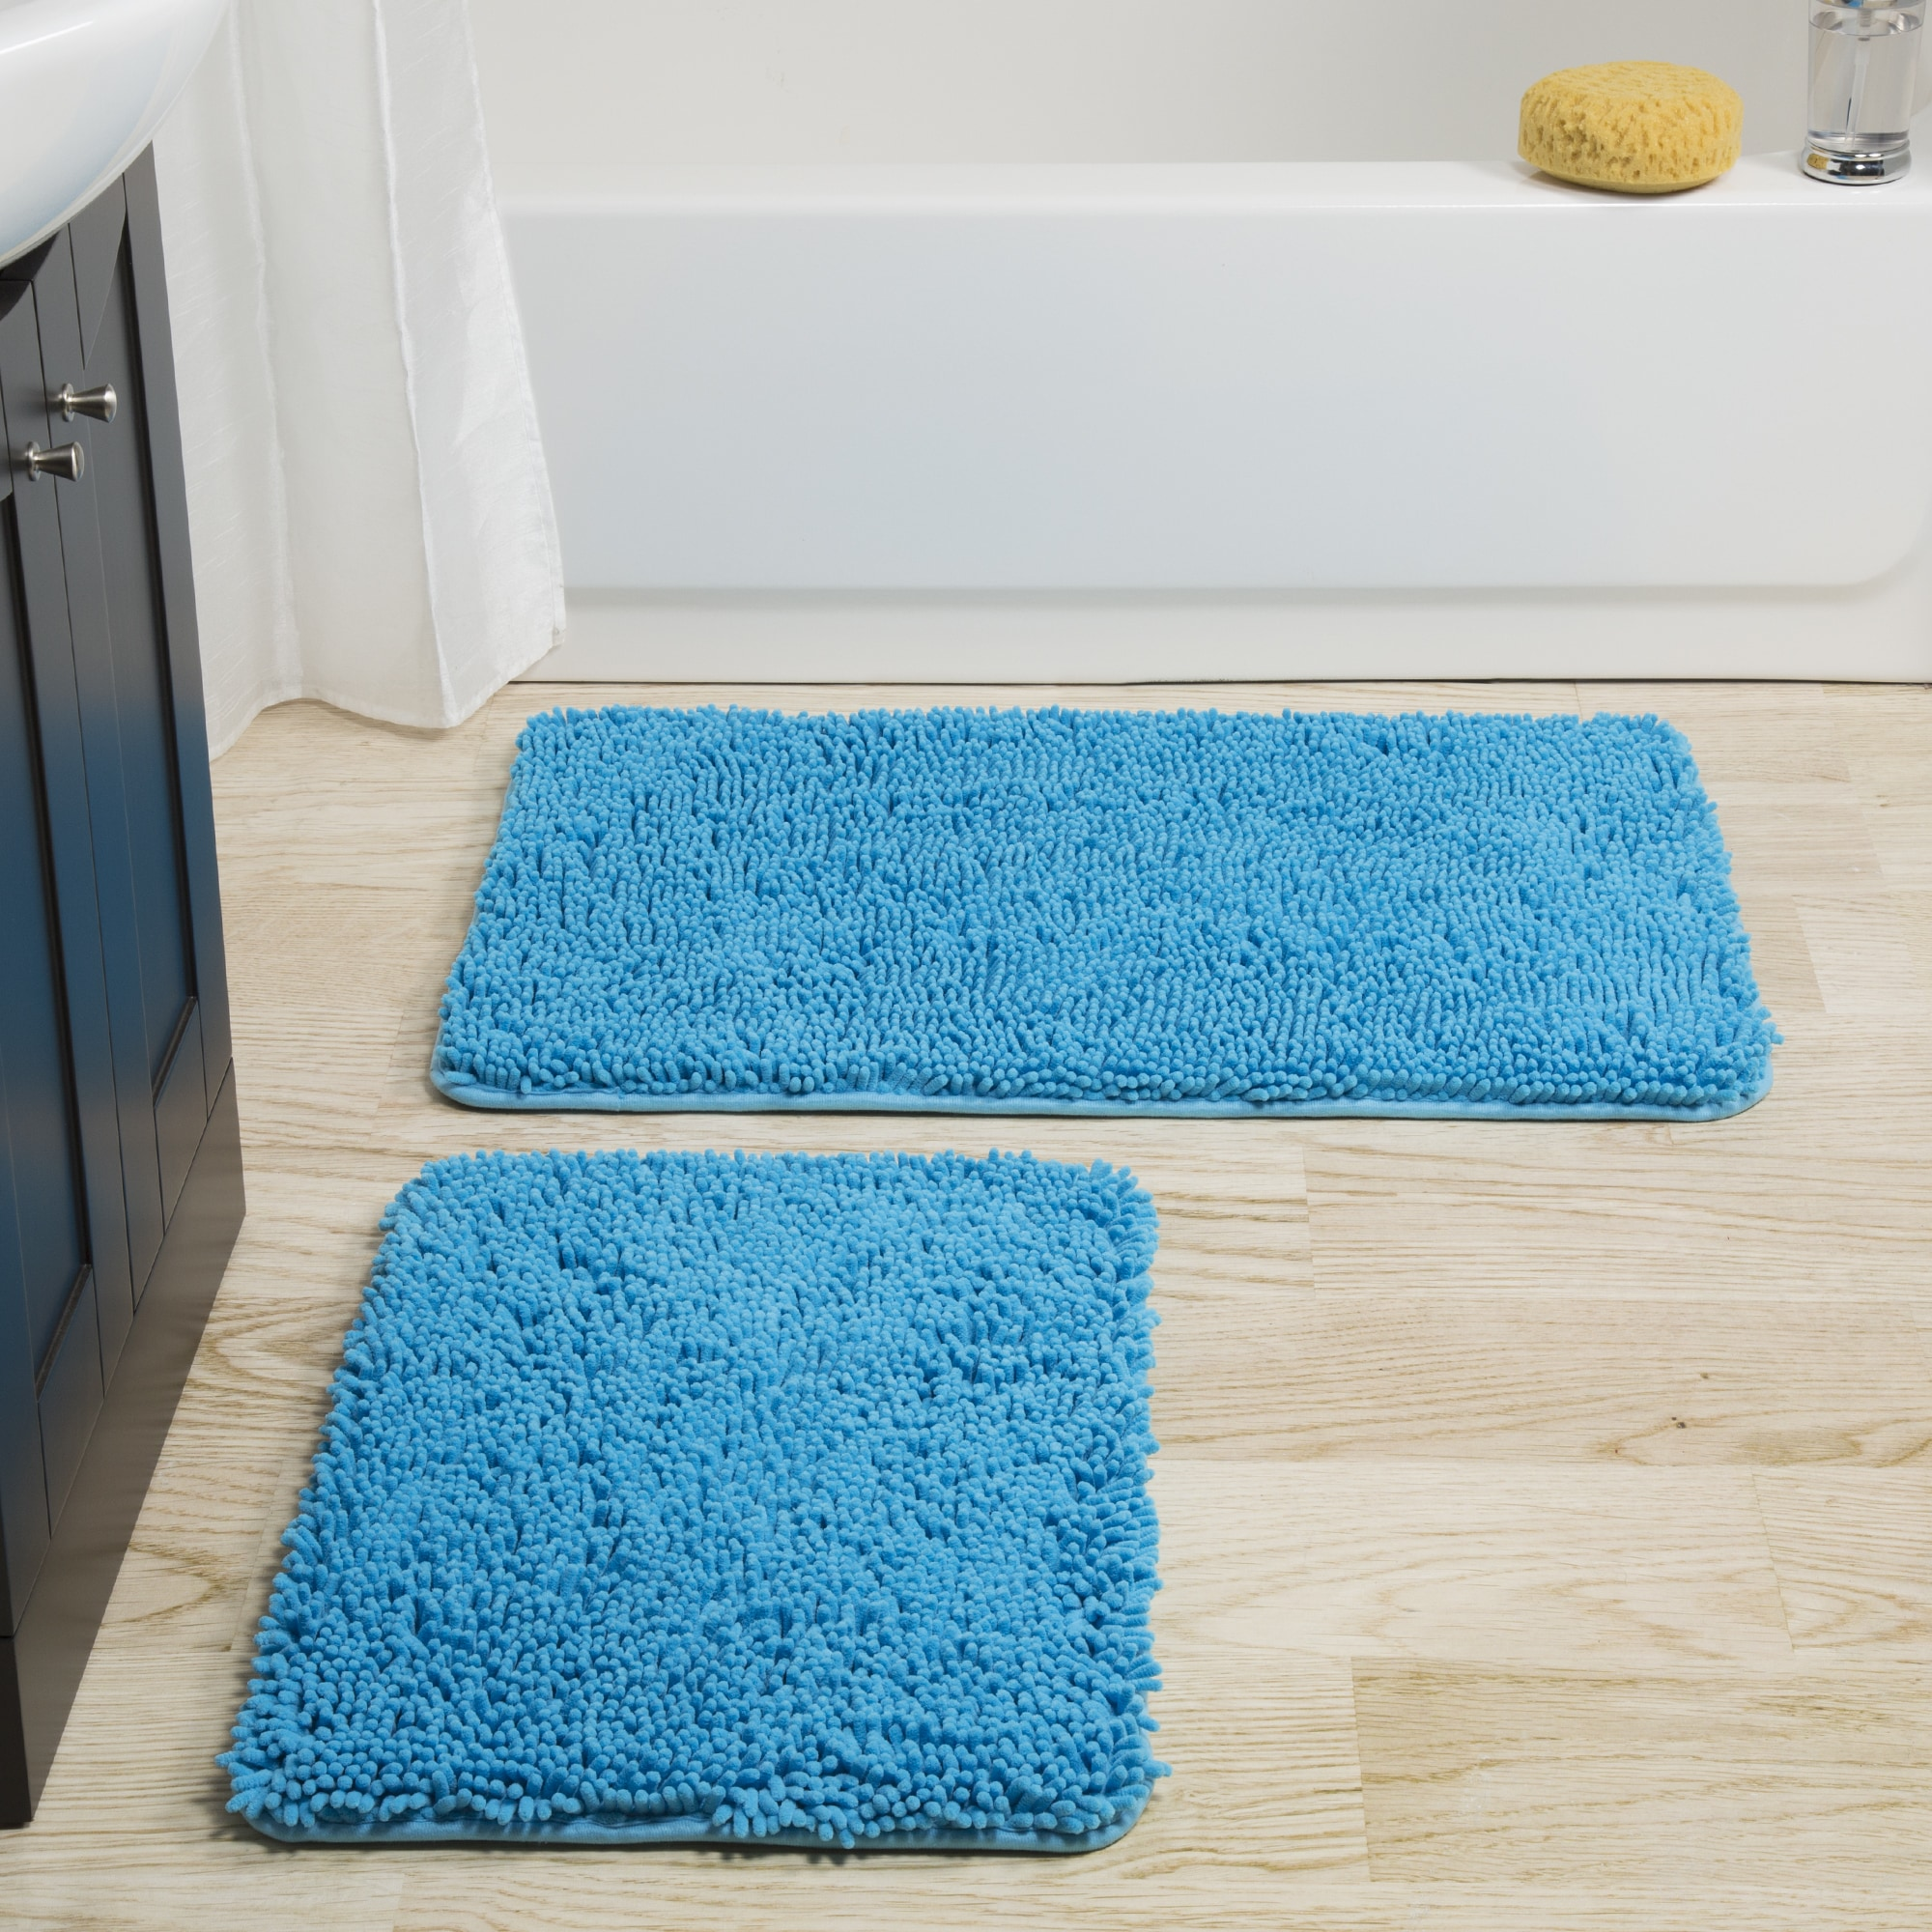 Blue Bath Rugs Mats Find Great Towels Deals Ping At Com